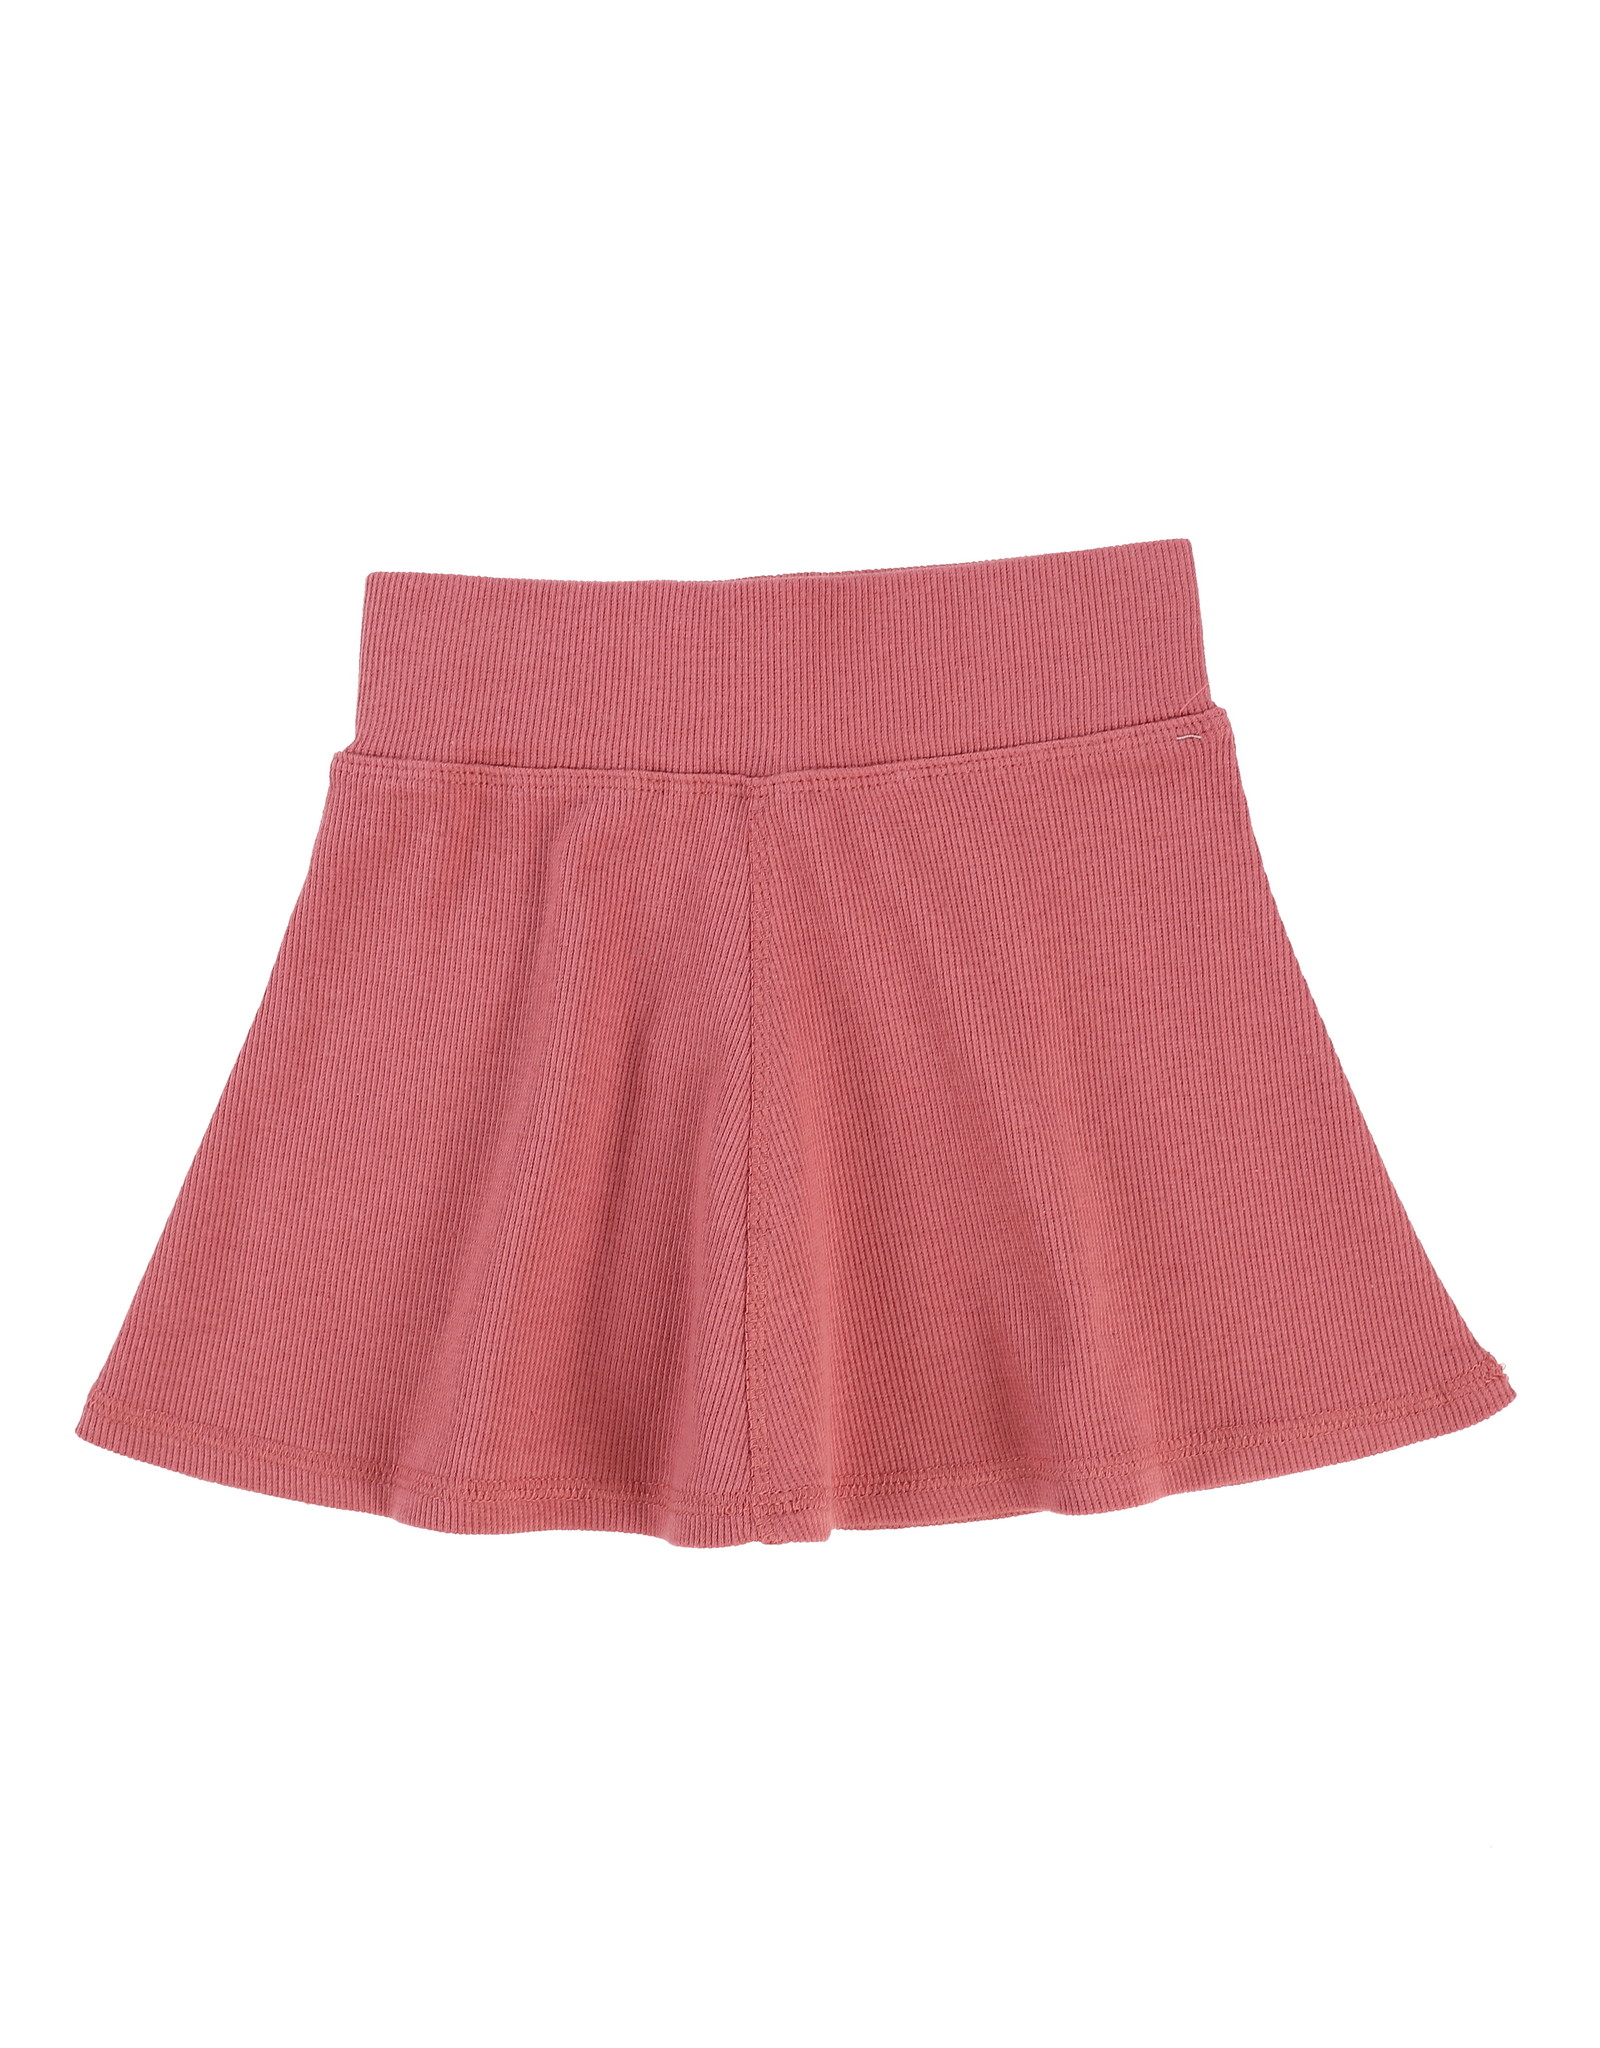 LIL LEGS SS20 Ribbed Skirt